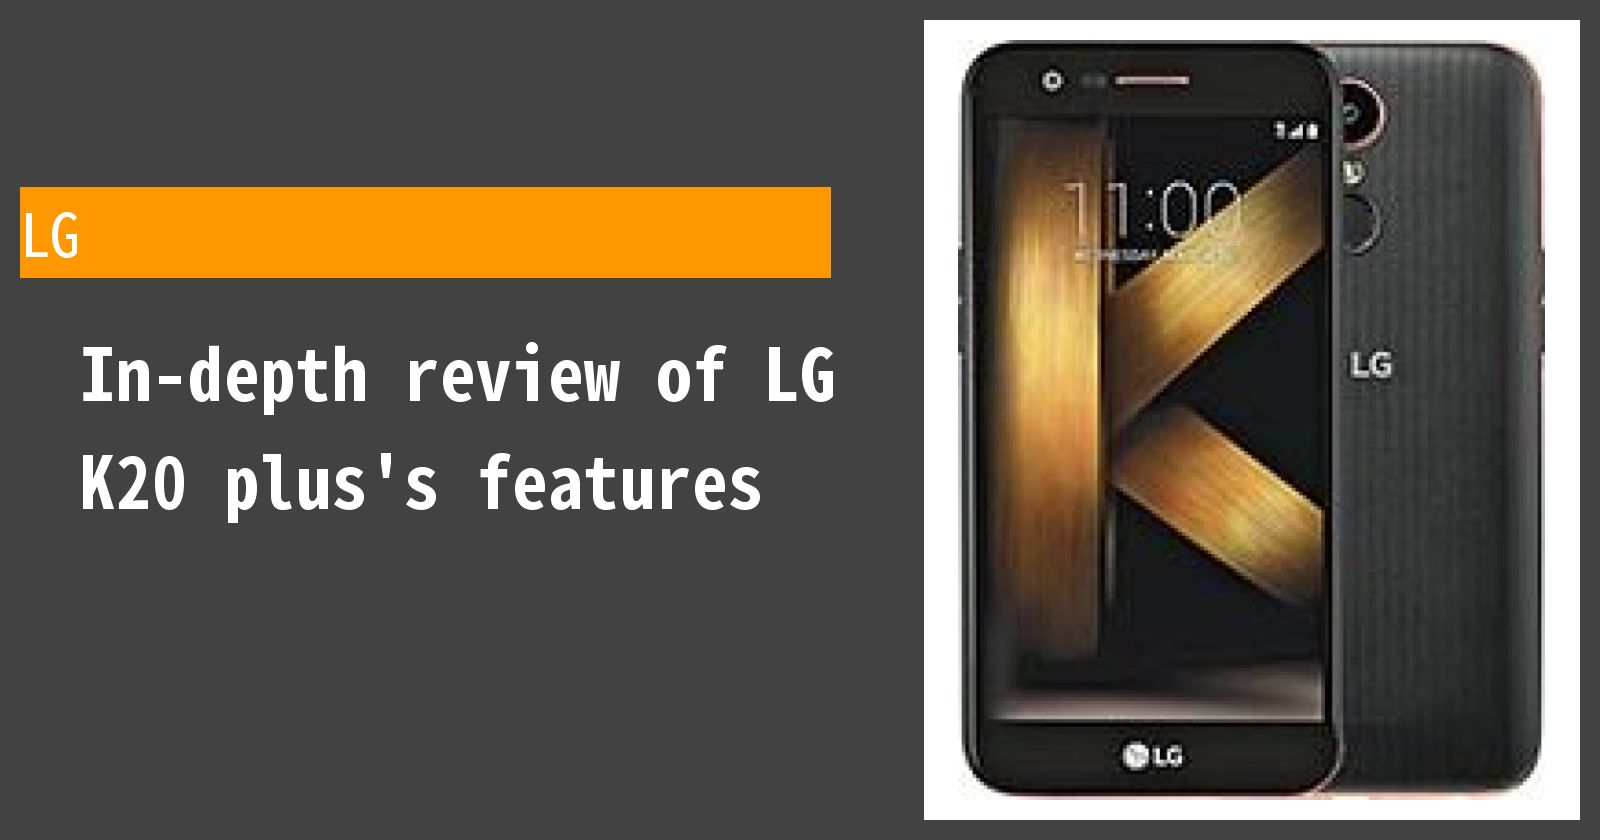 What are the advantages and disadvantages of LG K20 plus? A